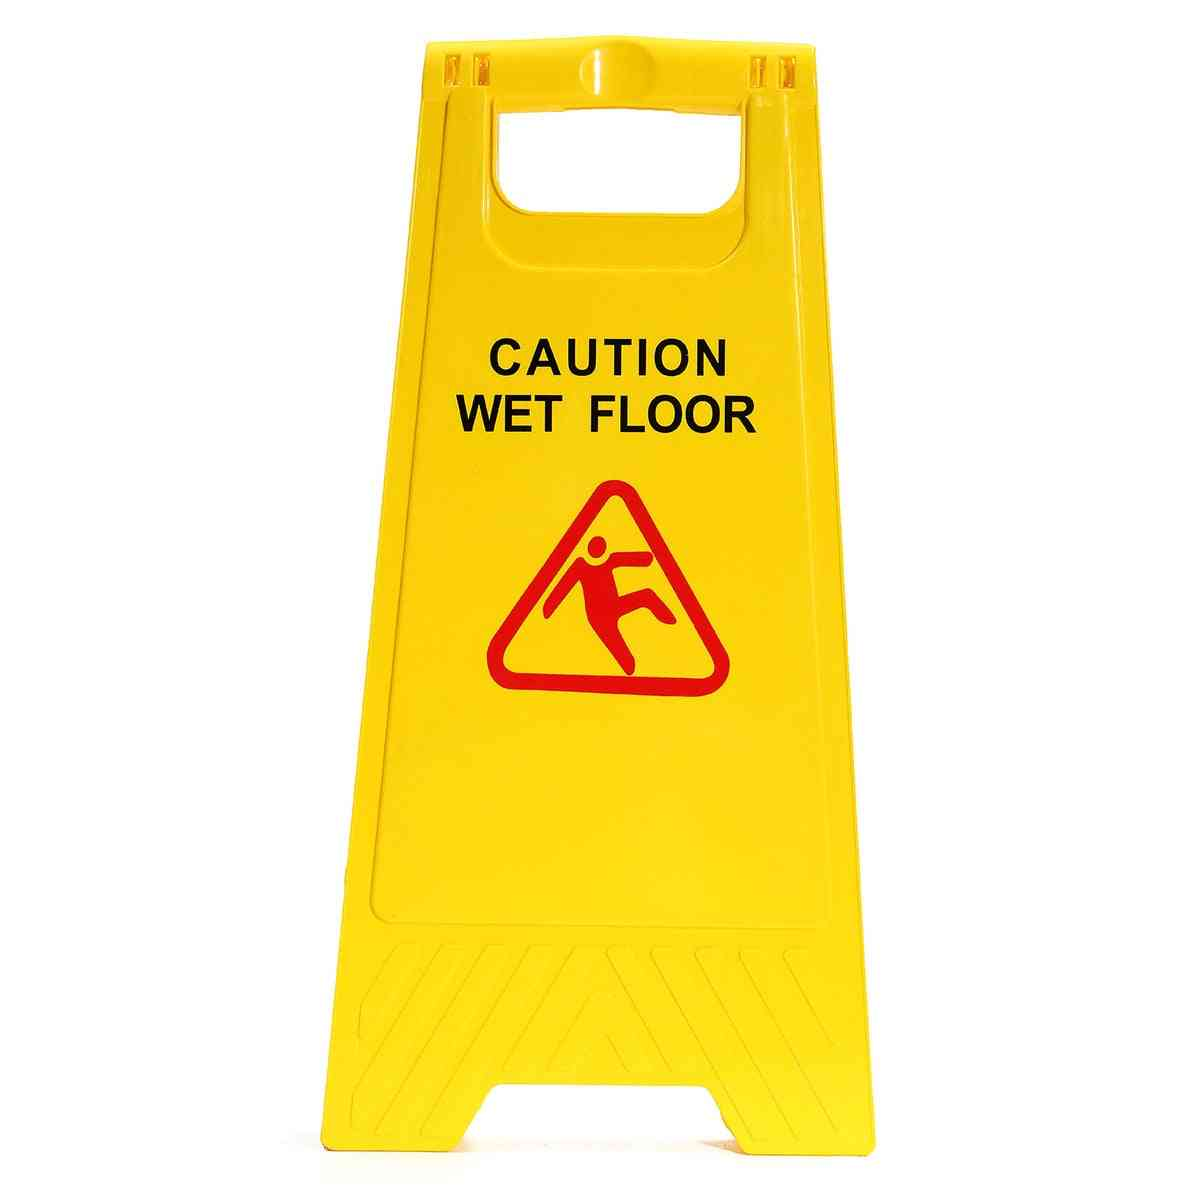 A-type, Yellow Caution- Wet Floor, Warning Sign Tool